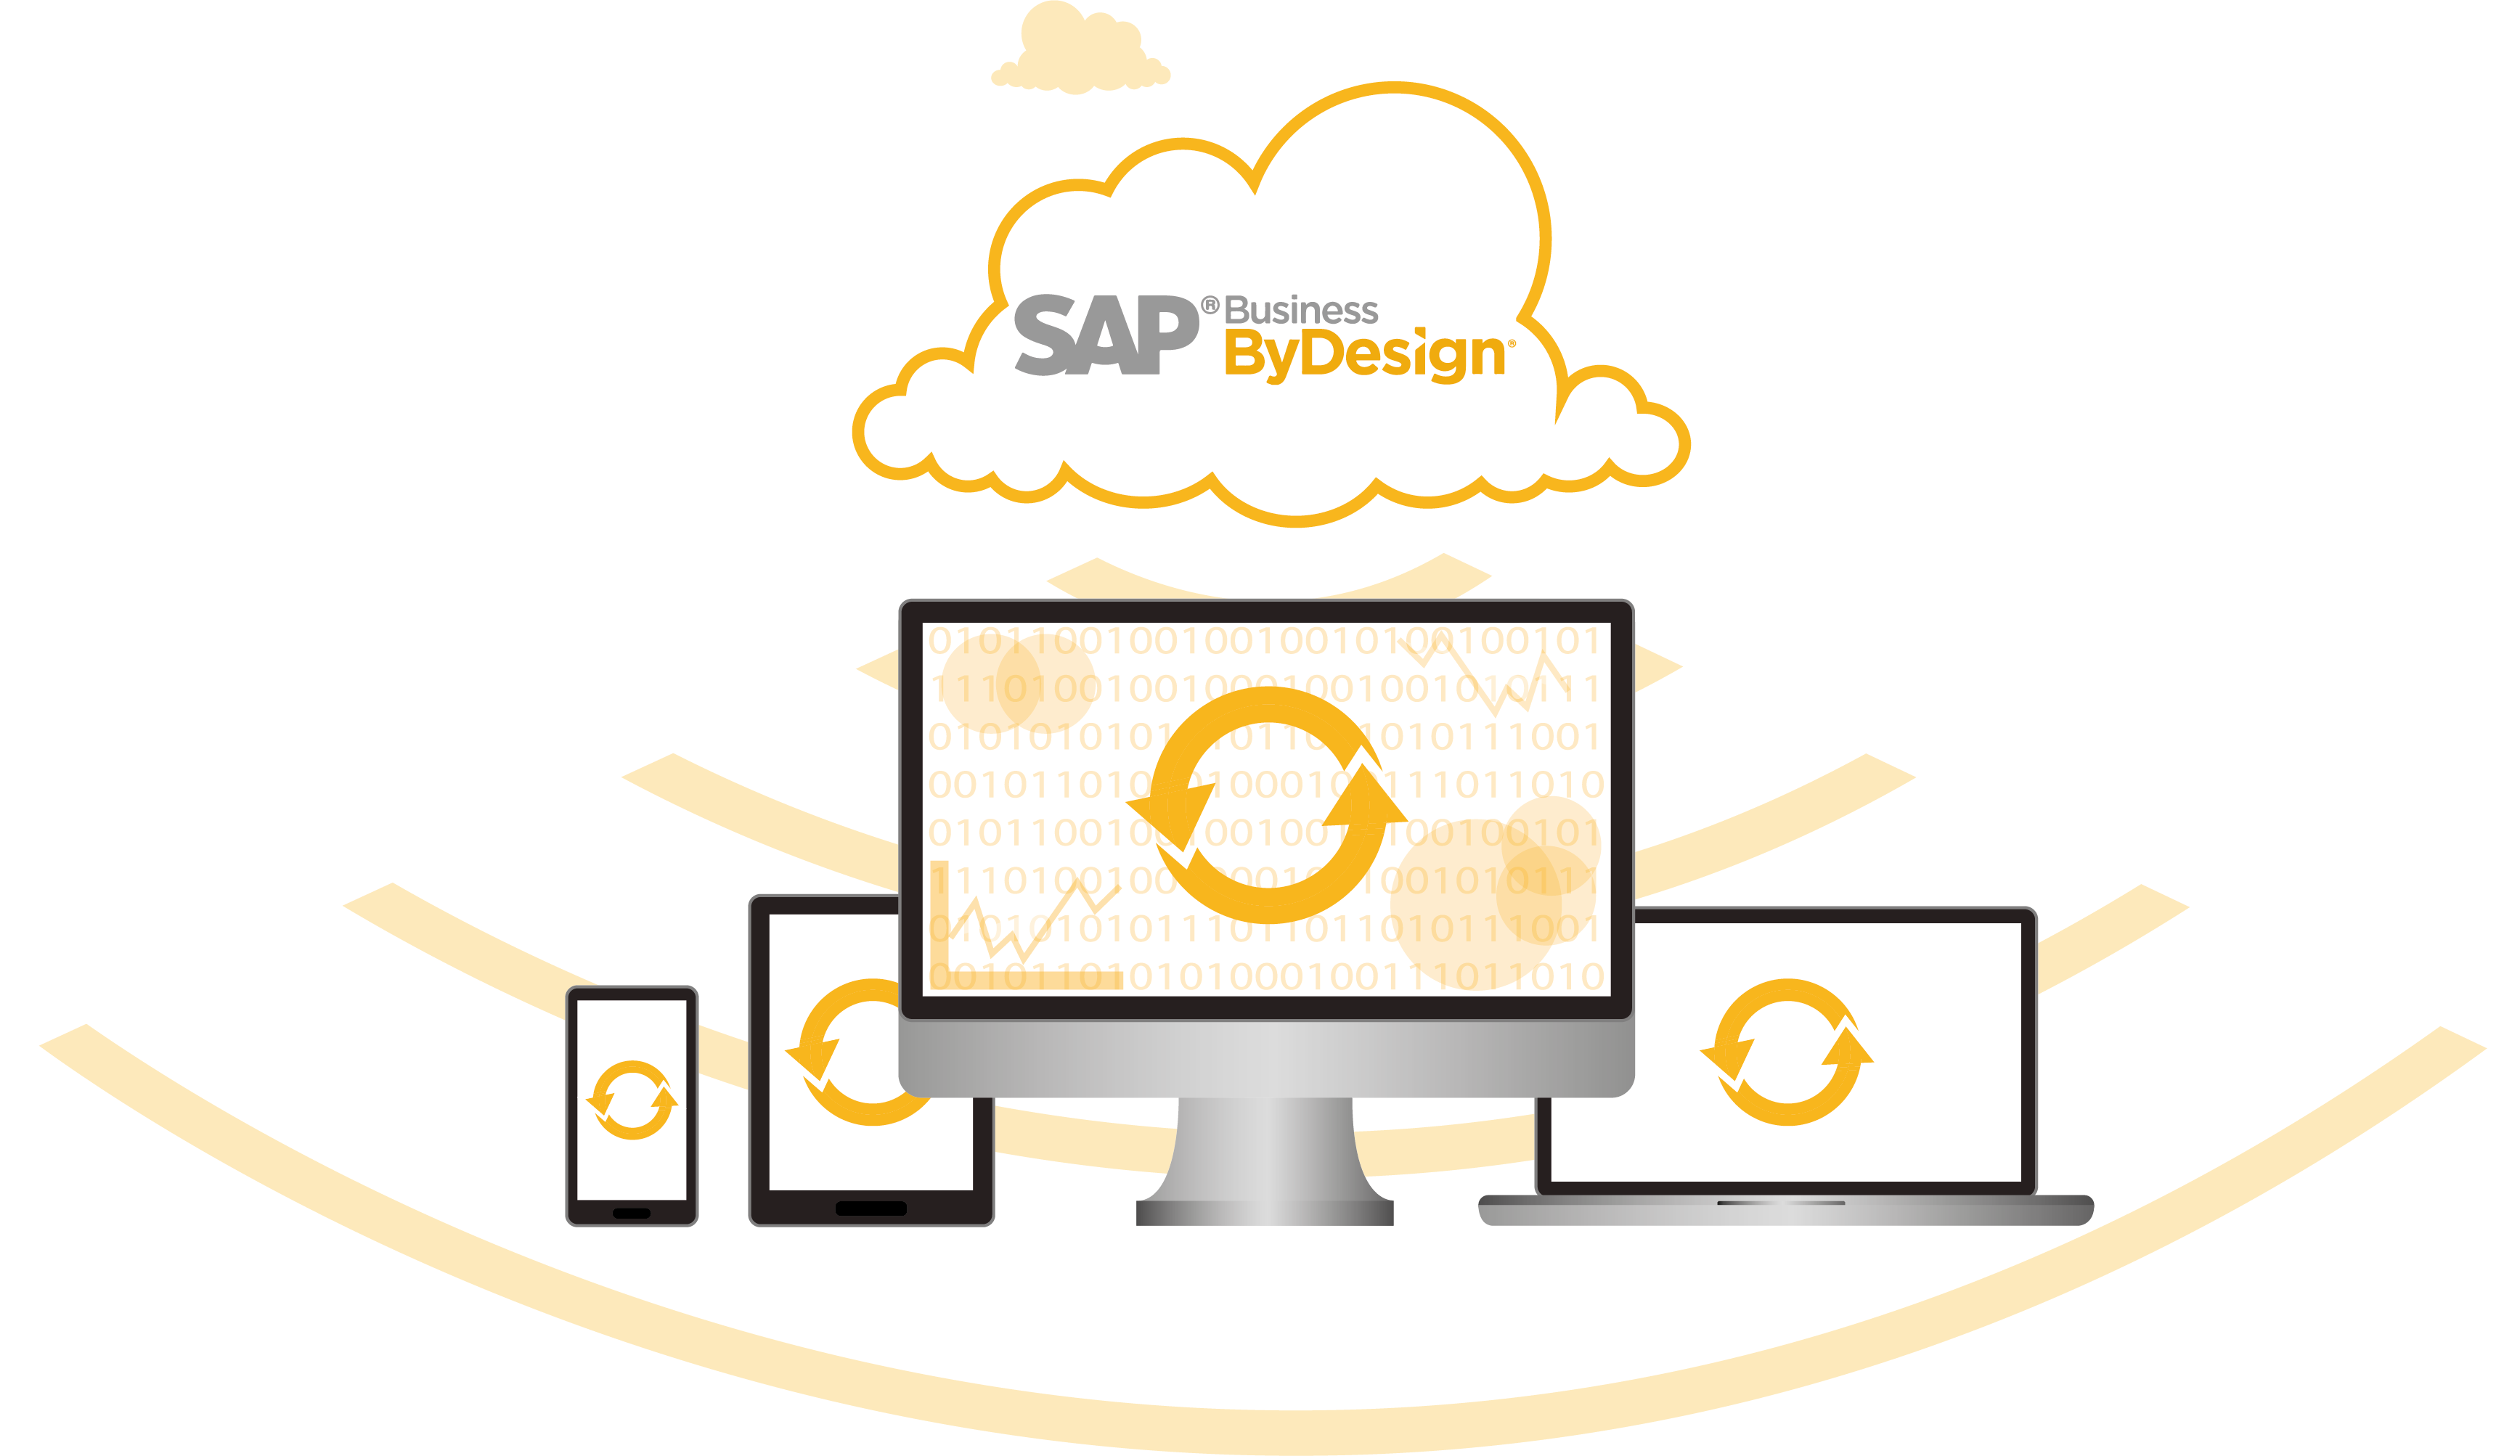 SAP ByD Illustration